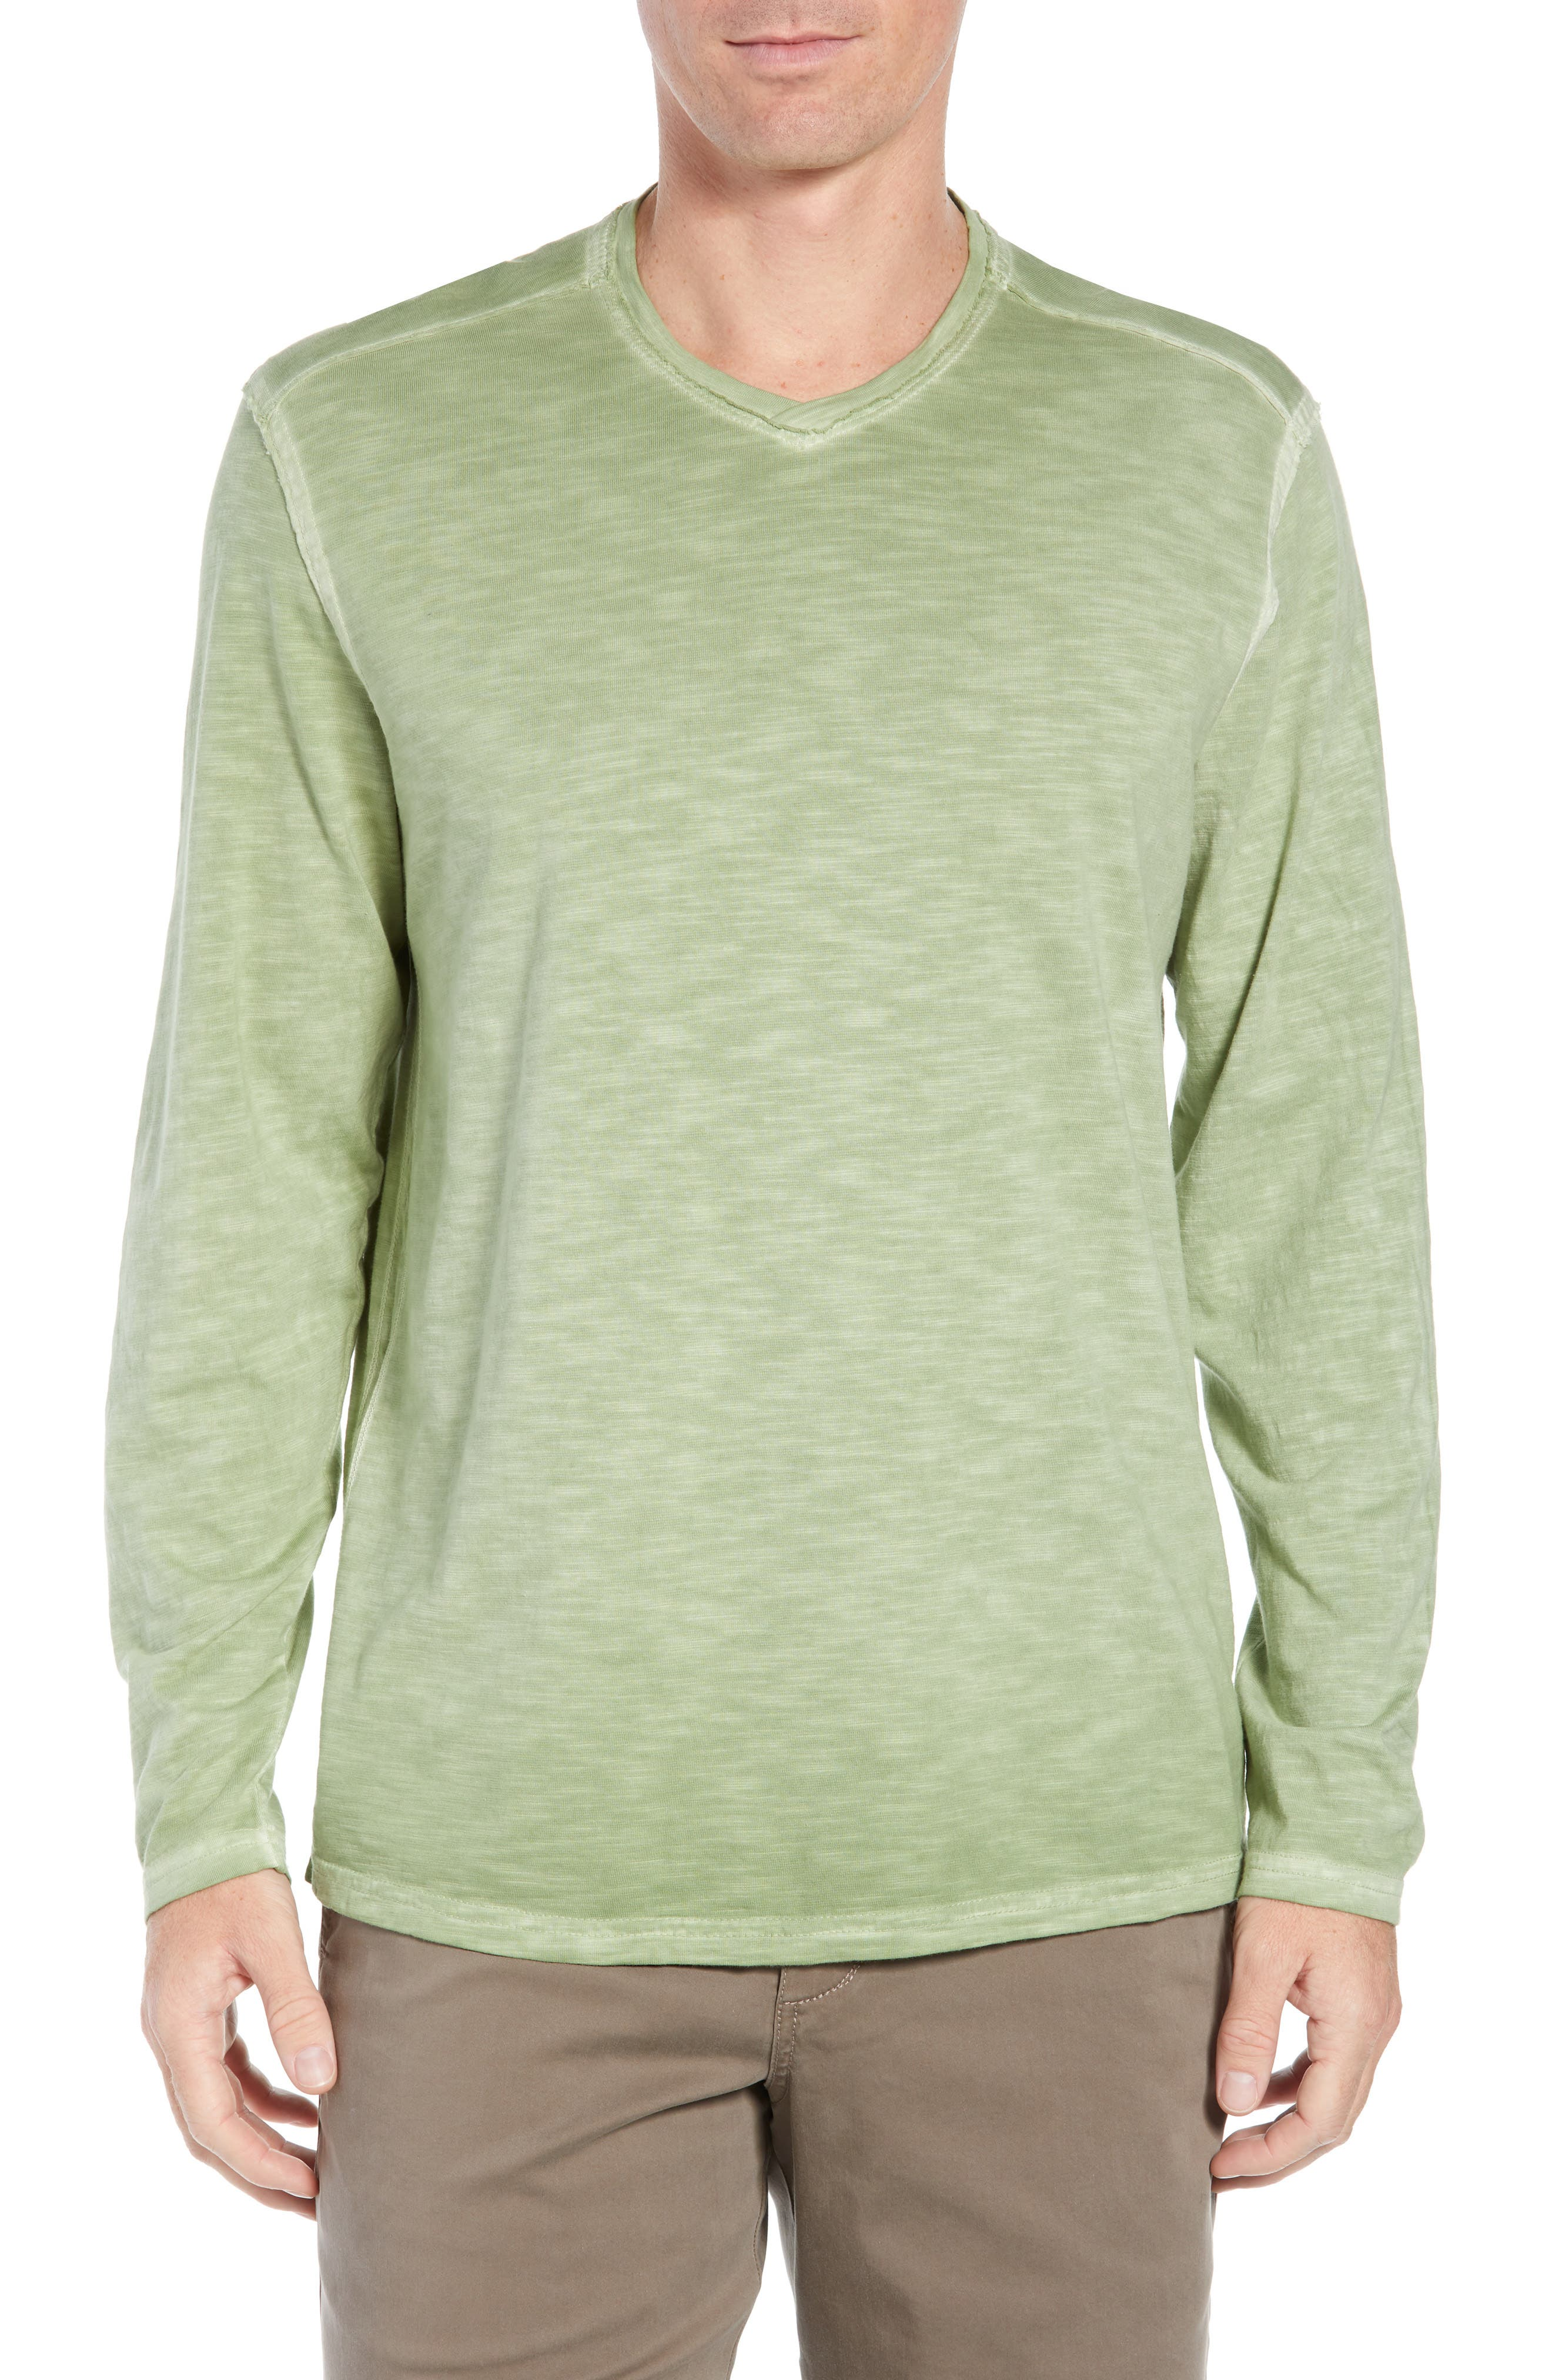 Suncoast Shores Long Sleeve V-Neck T-Shirt,                         Main,                         color, WILD CLOVER